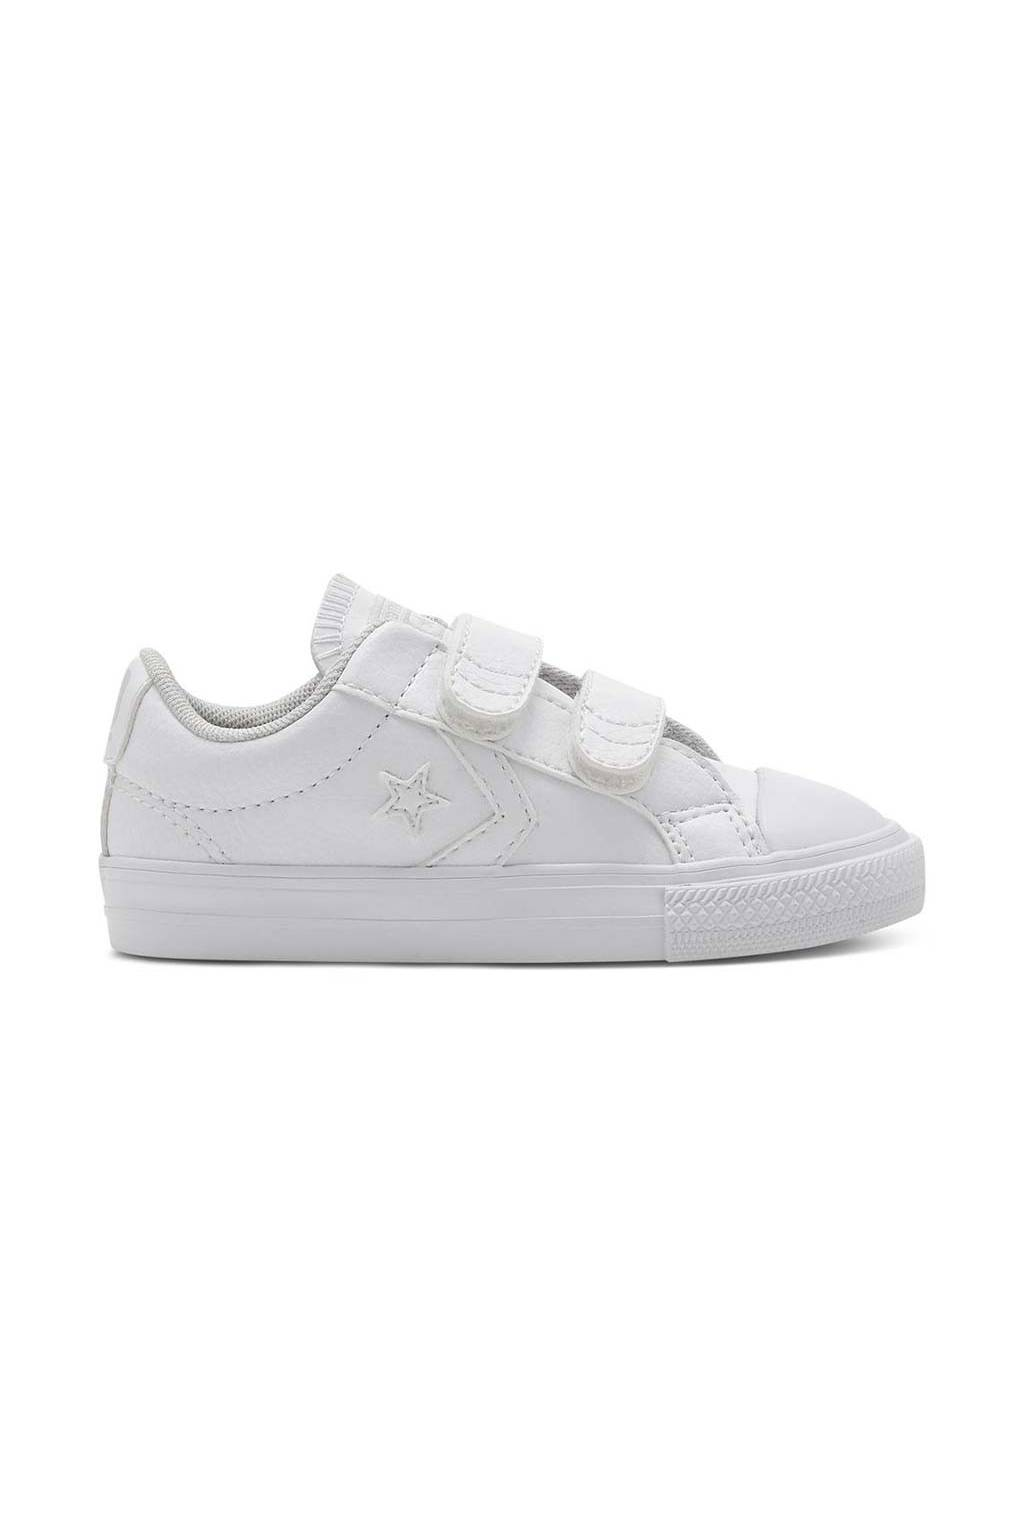 6b83e8122a0b8d Converse Star Player 2V OX White OX 751878C - medinapiel.es